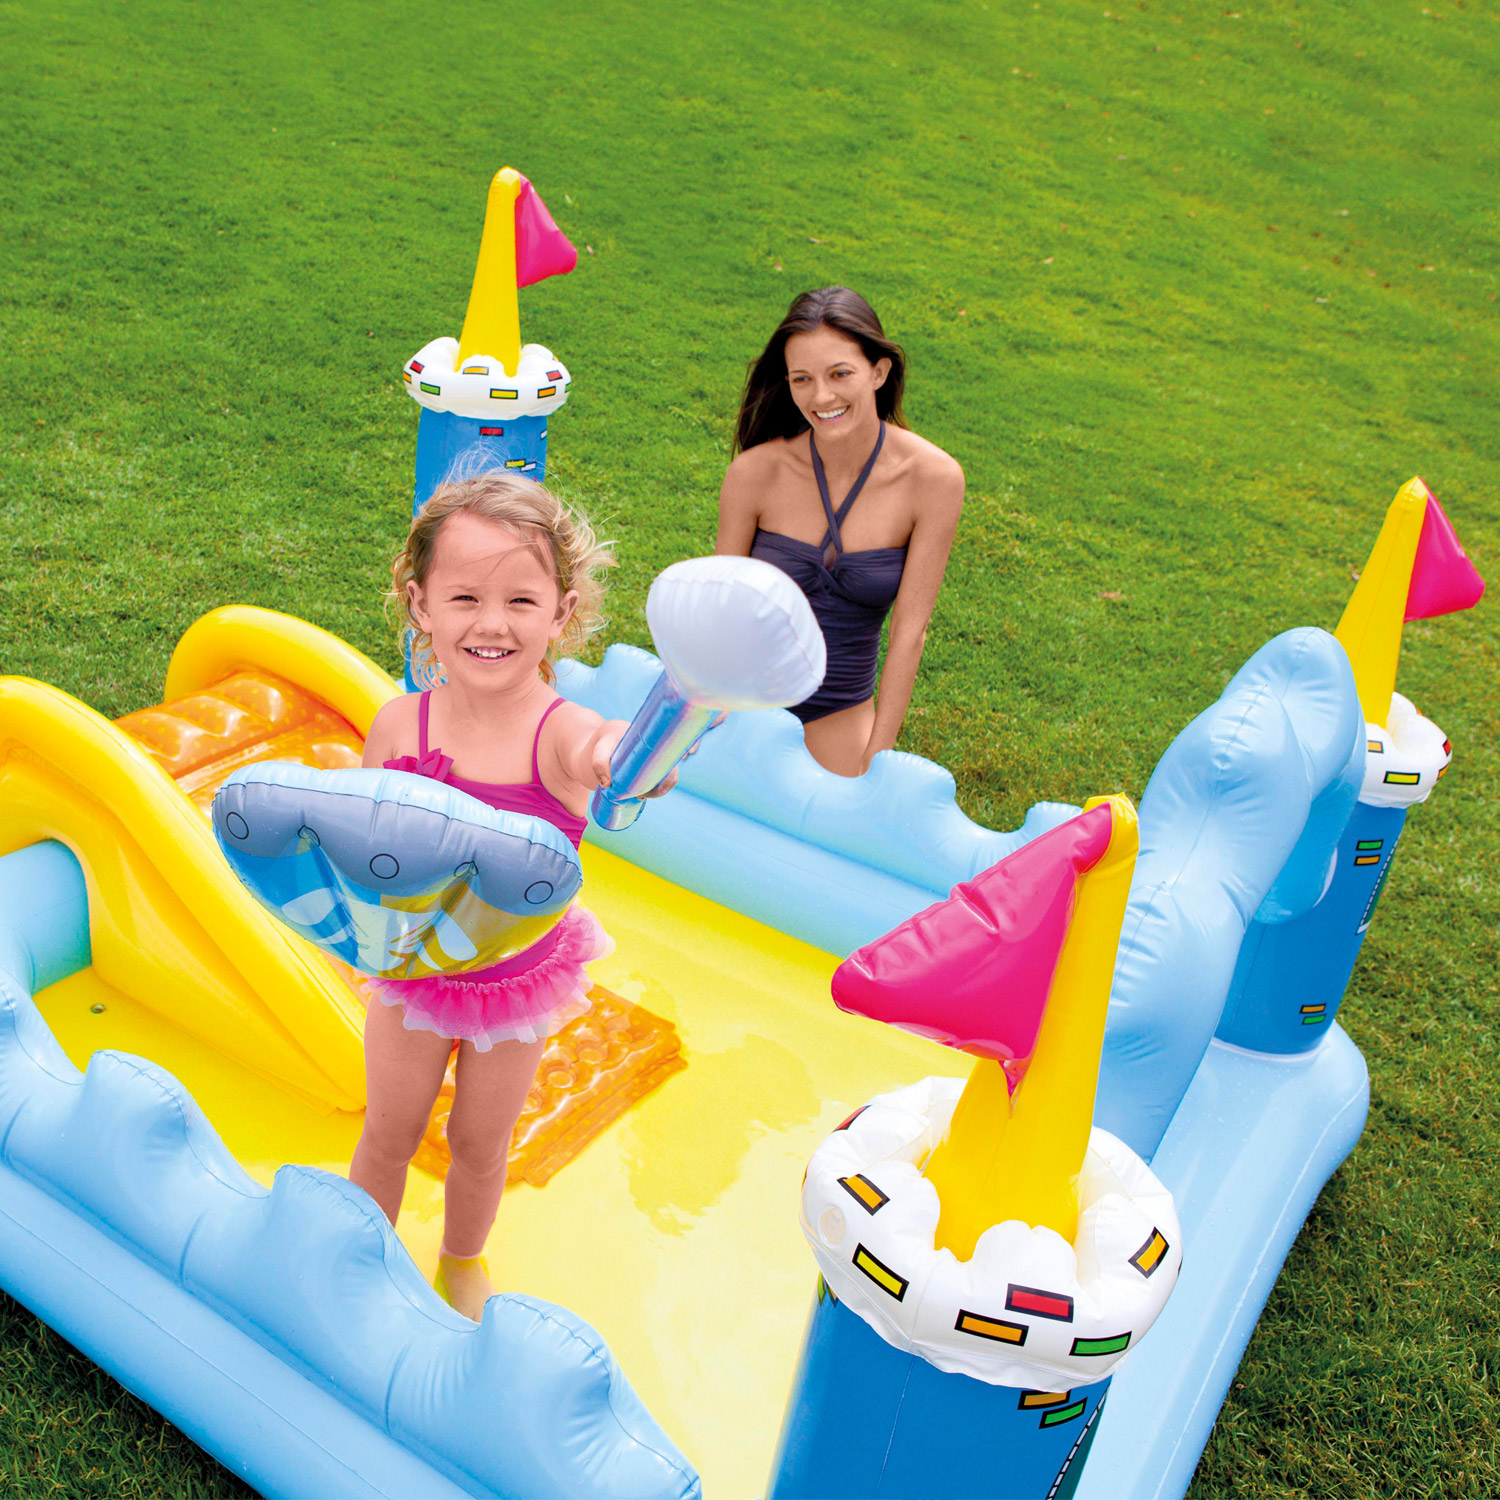 intex kinder pool rutsche spielhaus trampolin planschbecken h pfburg babypool ebay. Black Bedroom Furniture Sets. Home Design Ideas